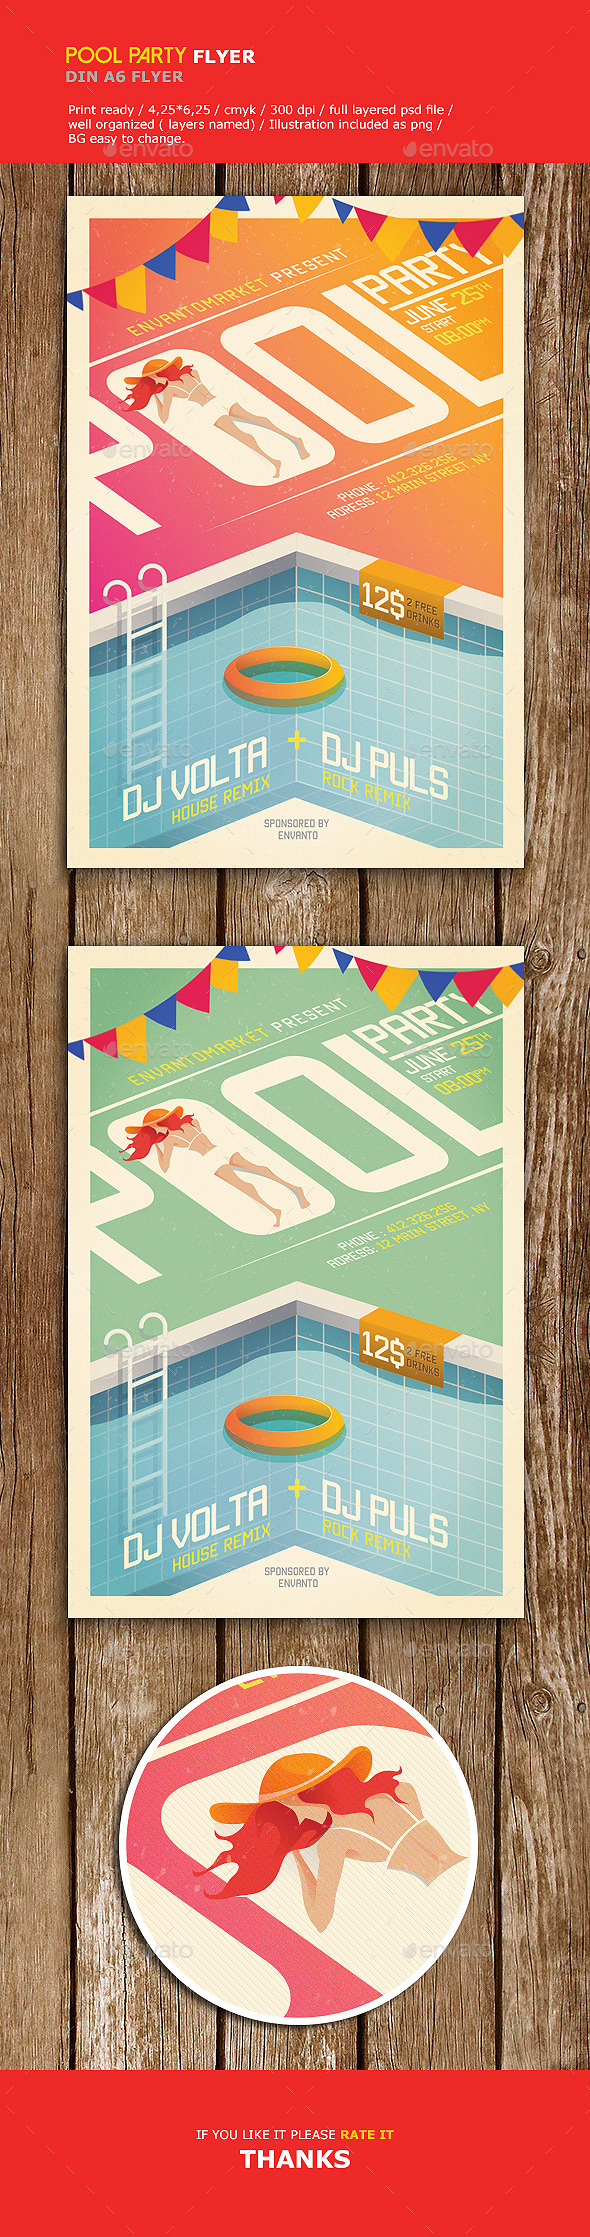 pool party flyer by firmacomdesign on deviantart